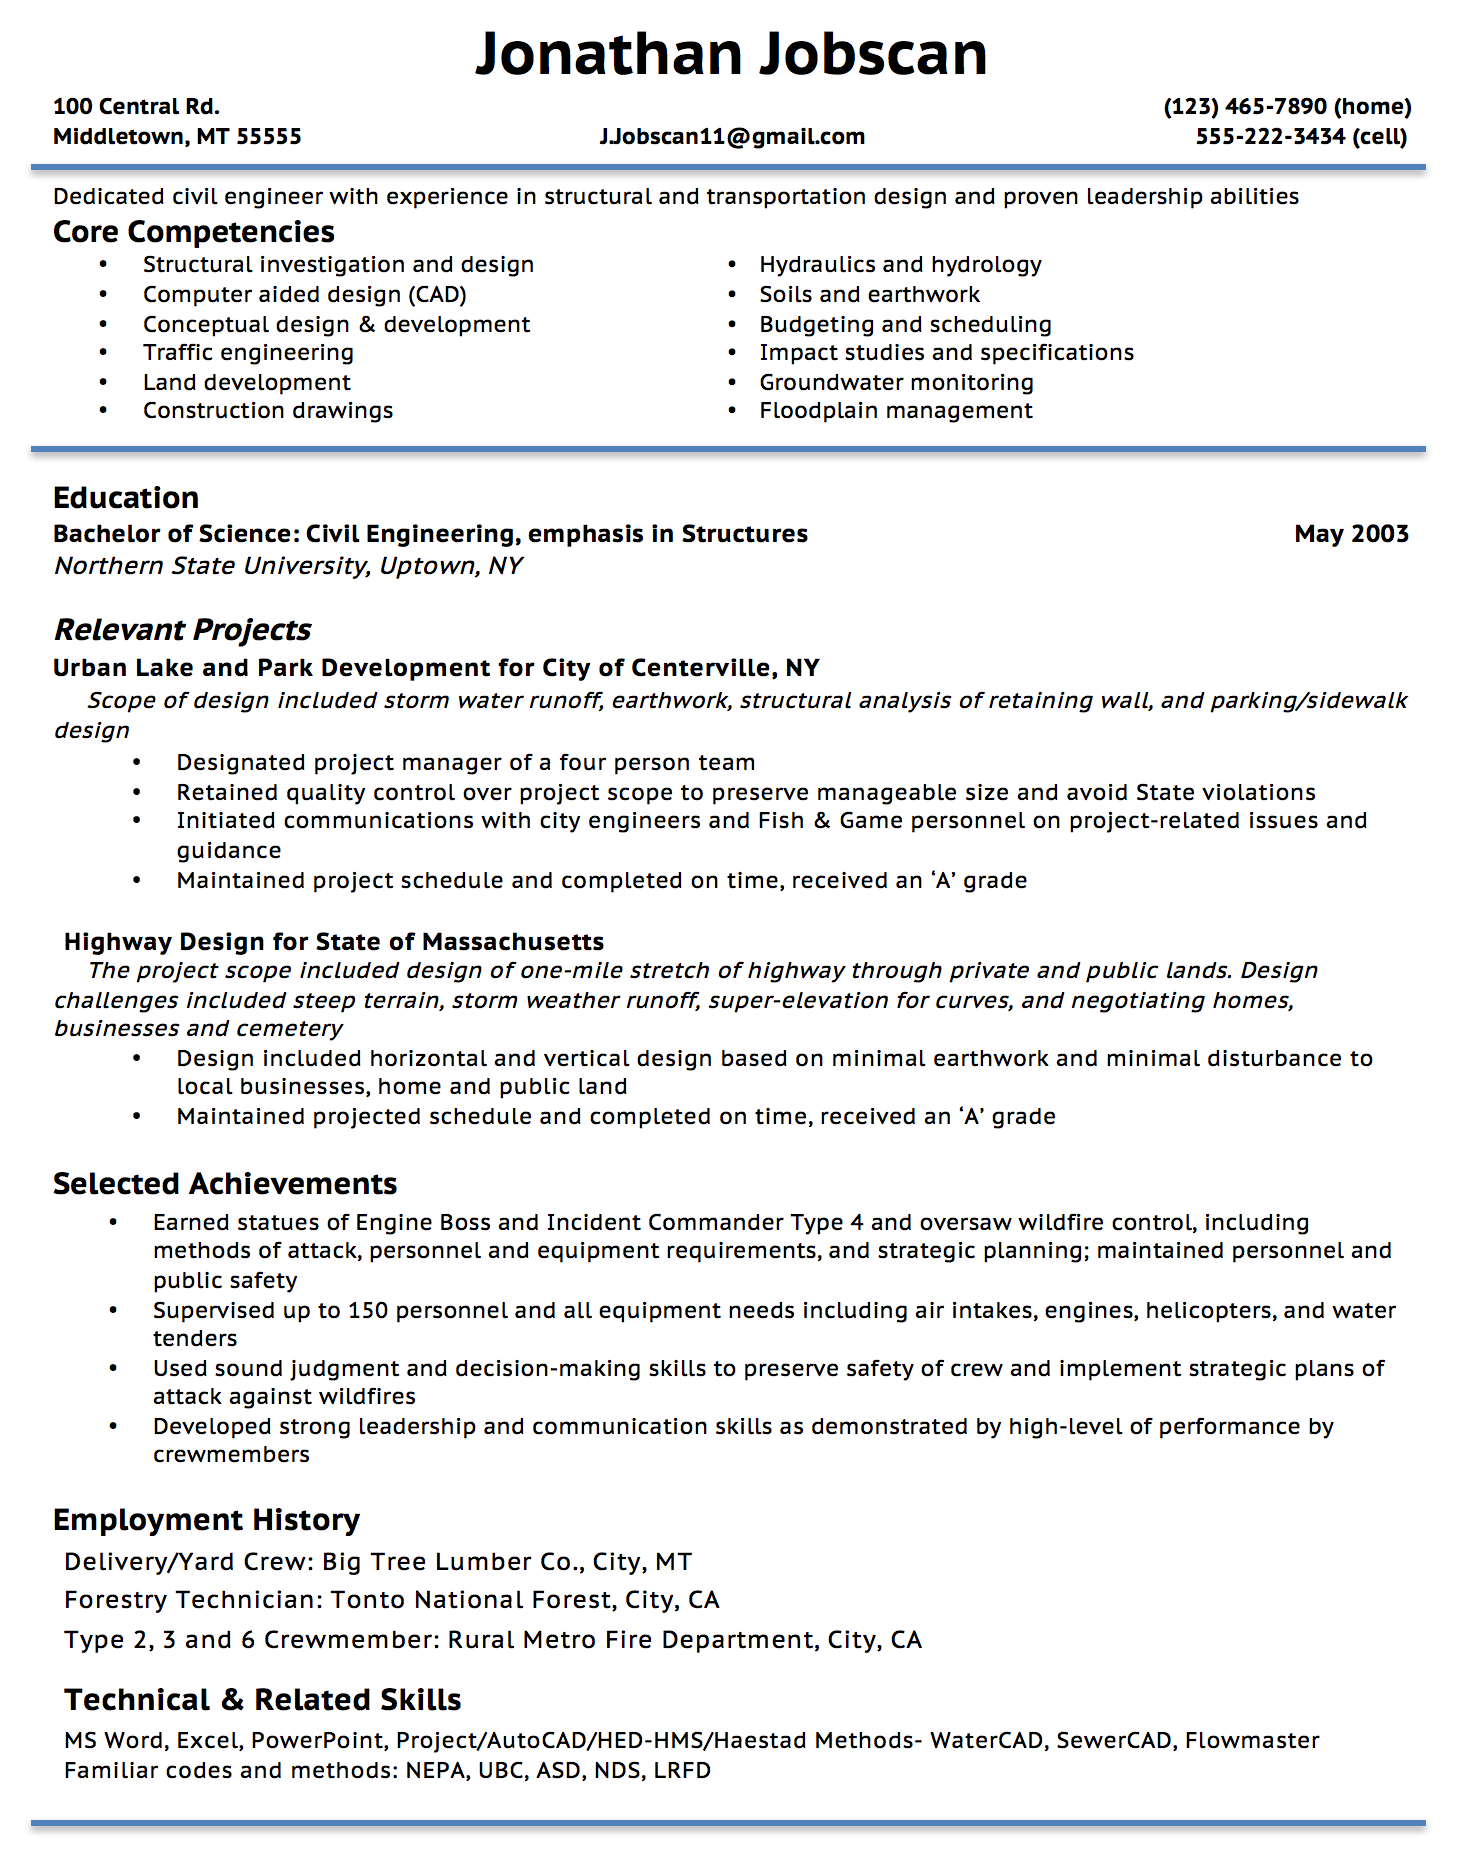 Opposenewapstandardsus  Seductive Resume Writing Guide  Jobscan With Fascinating Example Of A Functional Resume Format With Captivating Warehouse Resume Sample Also Production Supervisor Resume In Addition Resume For Housekeeping And Objective For Resume Samples As Well As Best Resume Words Additionally Examples Of Nursing Resumes From Jobscanco With Opposenewapstandardsus  Fascinating Resume Writing Guide  Jobscan With Captivating Example Of A Functional Resume Format And Seductive Warehouse Resume Sample Also Production Supervisor Resume In Addition Resume For Housekeeping From Jobscanco